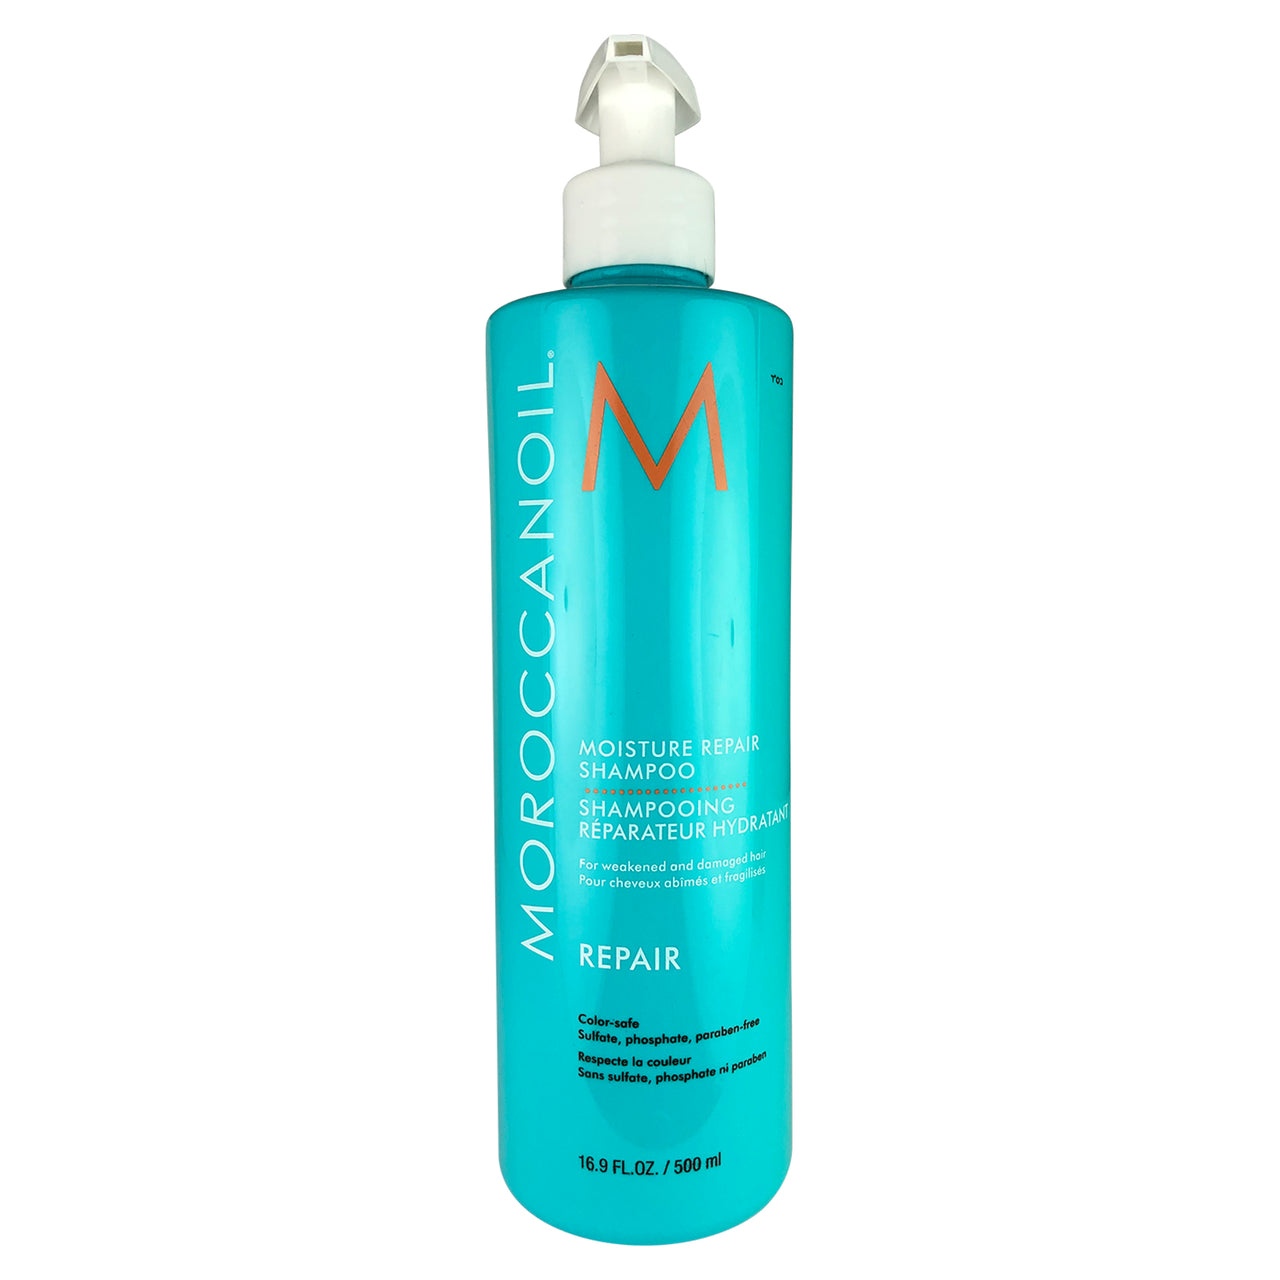 Moroccanoil Moisture Repair Shampoo 16.9 oz 500 ml